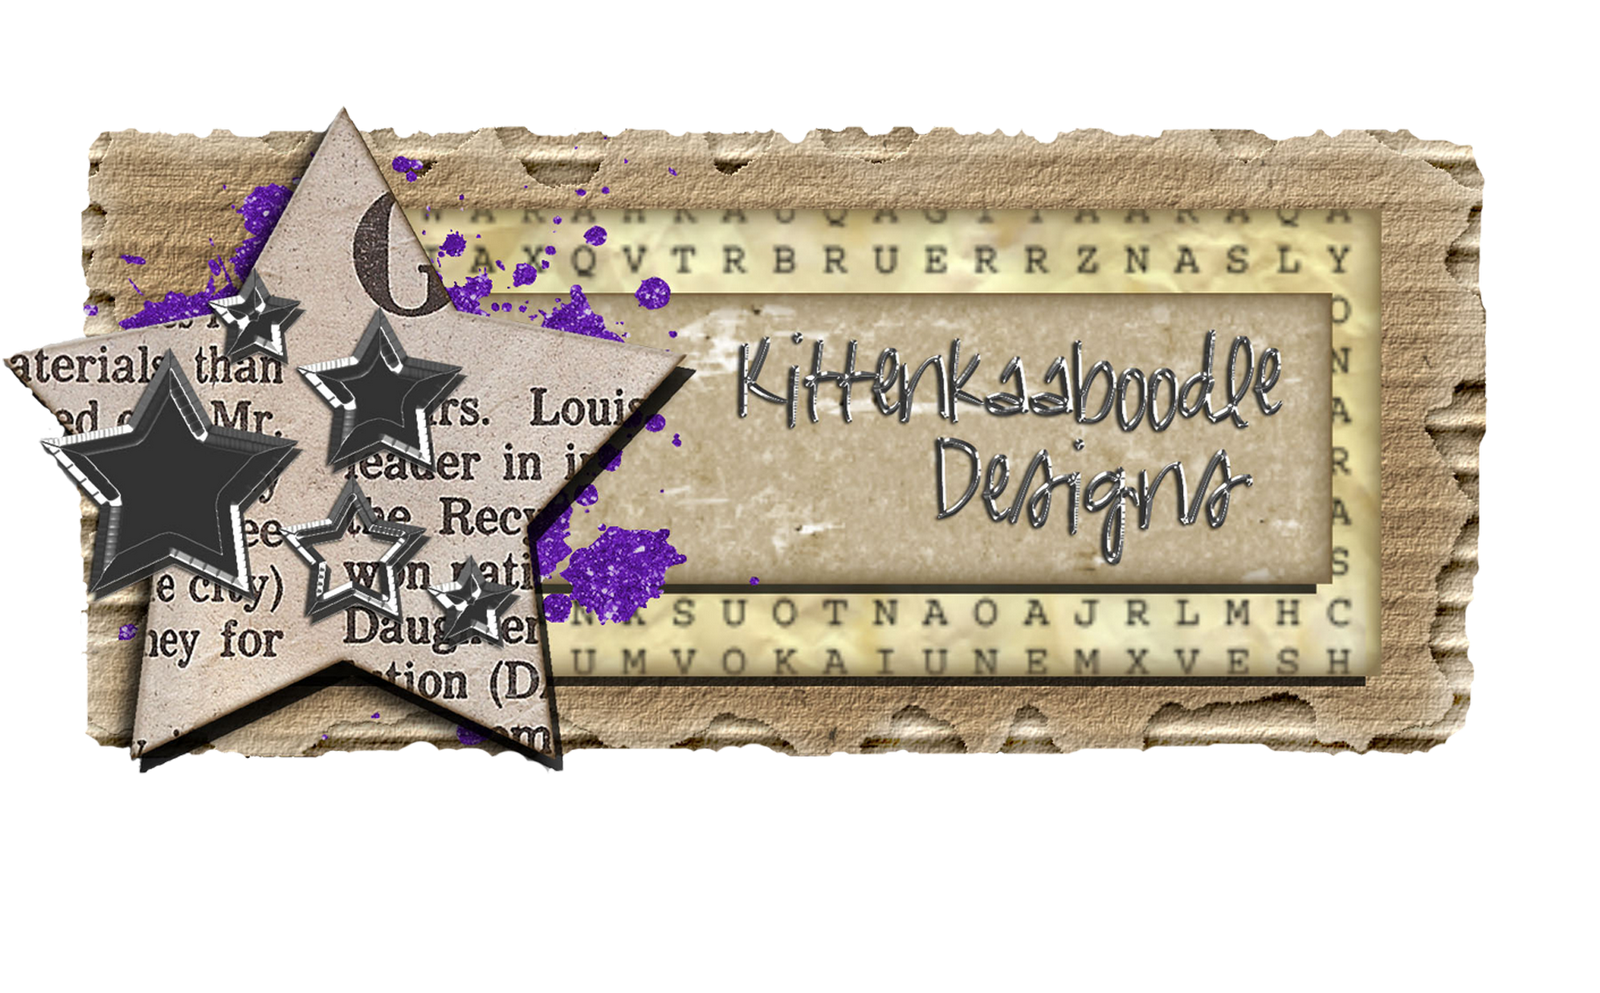 Kittenkaaboodles Designs